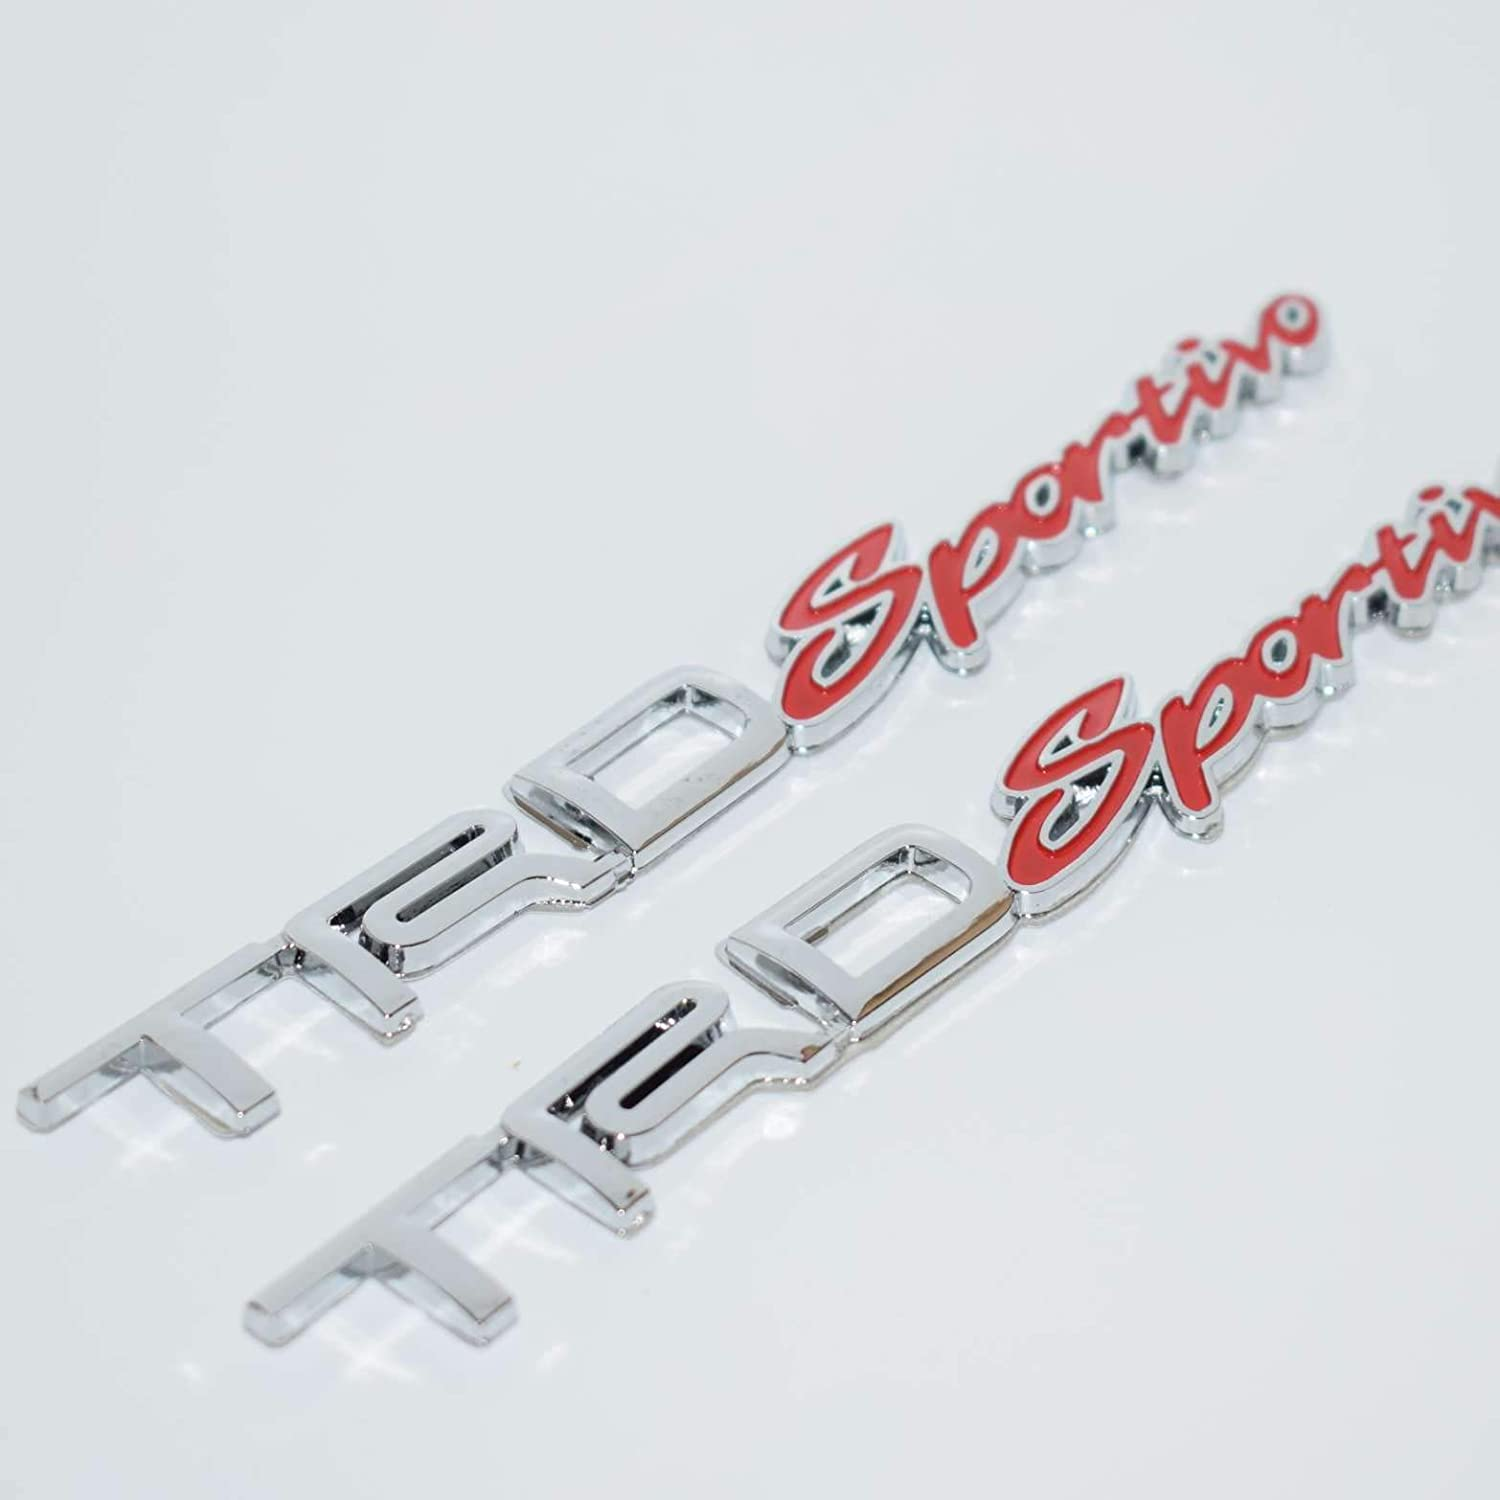 2 Pieces 2267RD Sportivo Red Chrome Badge Emblem 3D Car Trunk Side Auto Logo Fender Adhesive Replacement Decal Sticker Truck Van Sports Car Abs Plastic Diy TOTUMY